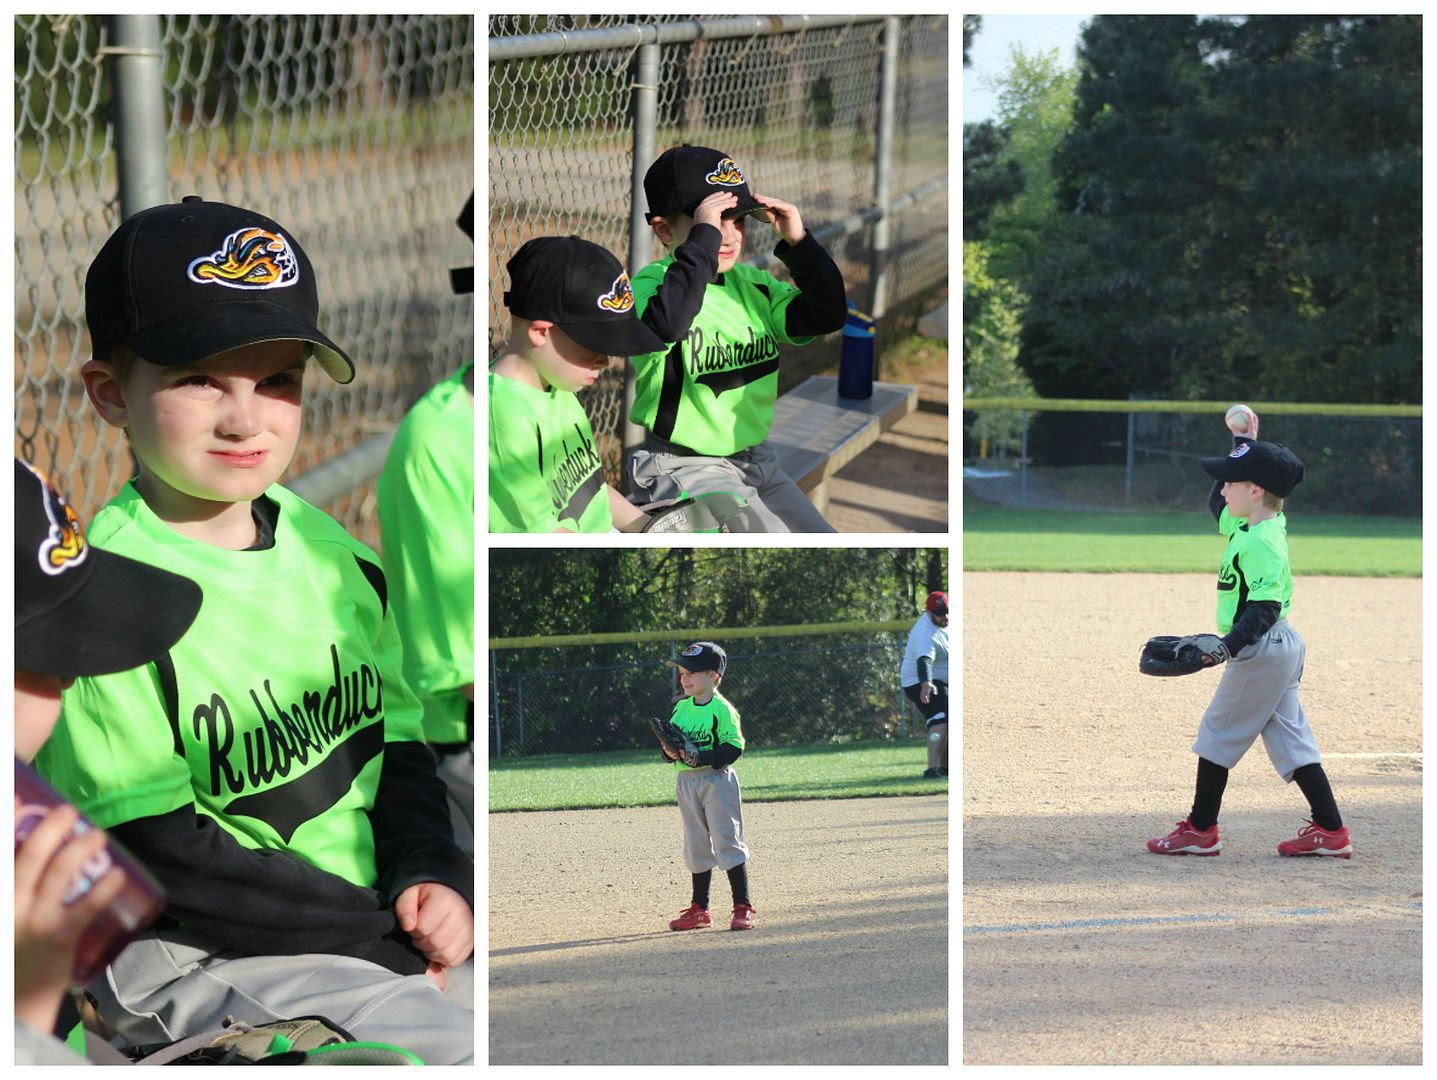 photo tball.collage1_zpsra6flmhy.jpg